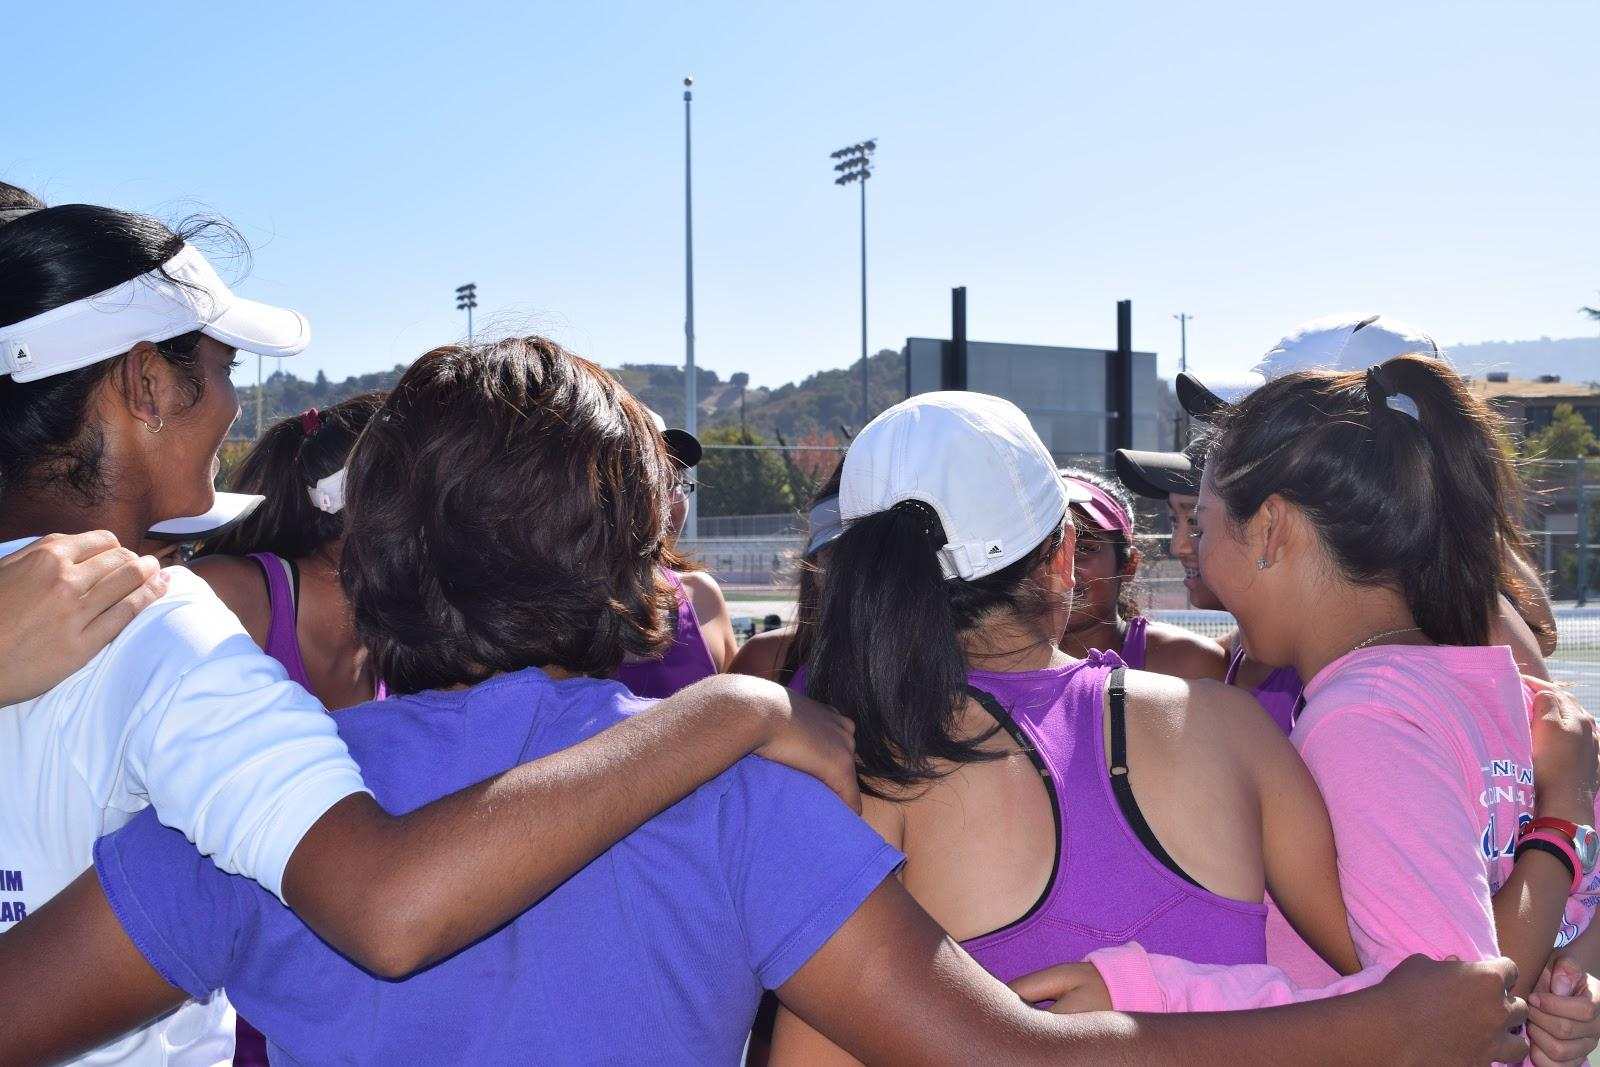 Team huddles together before the match.